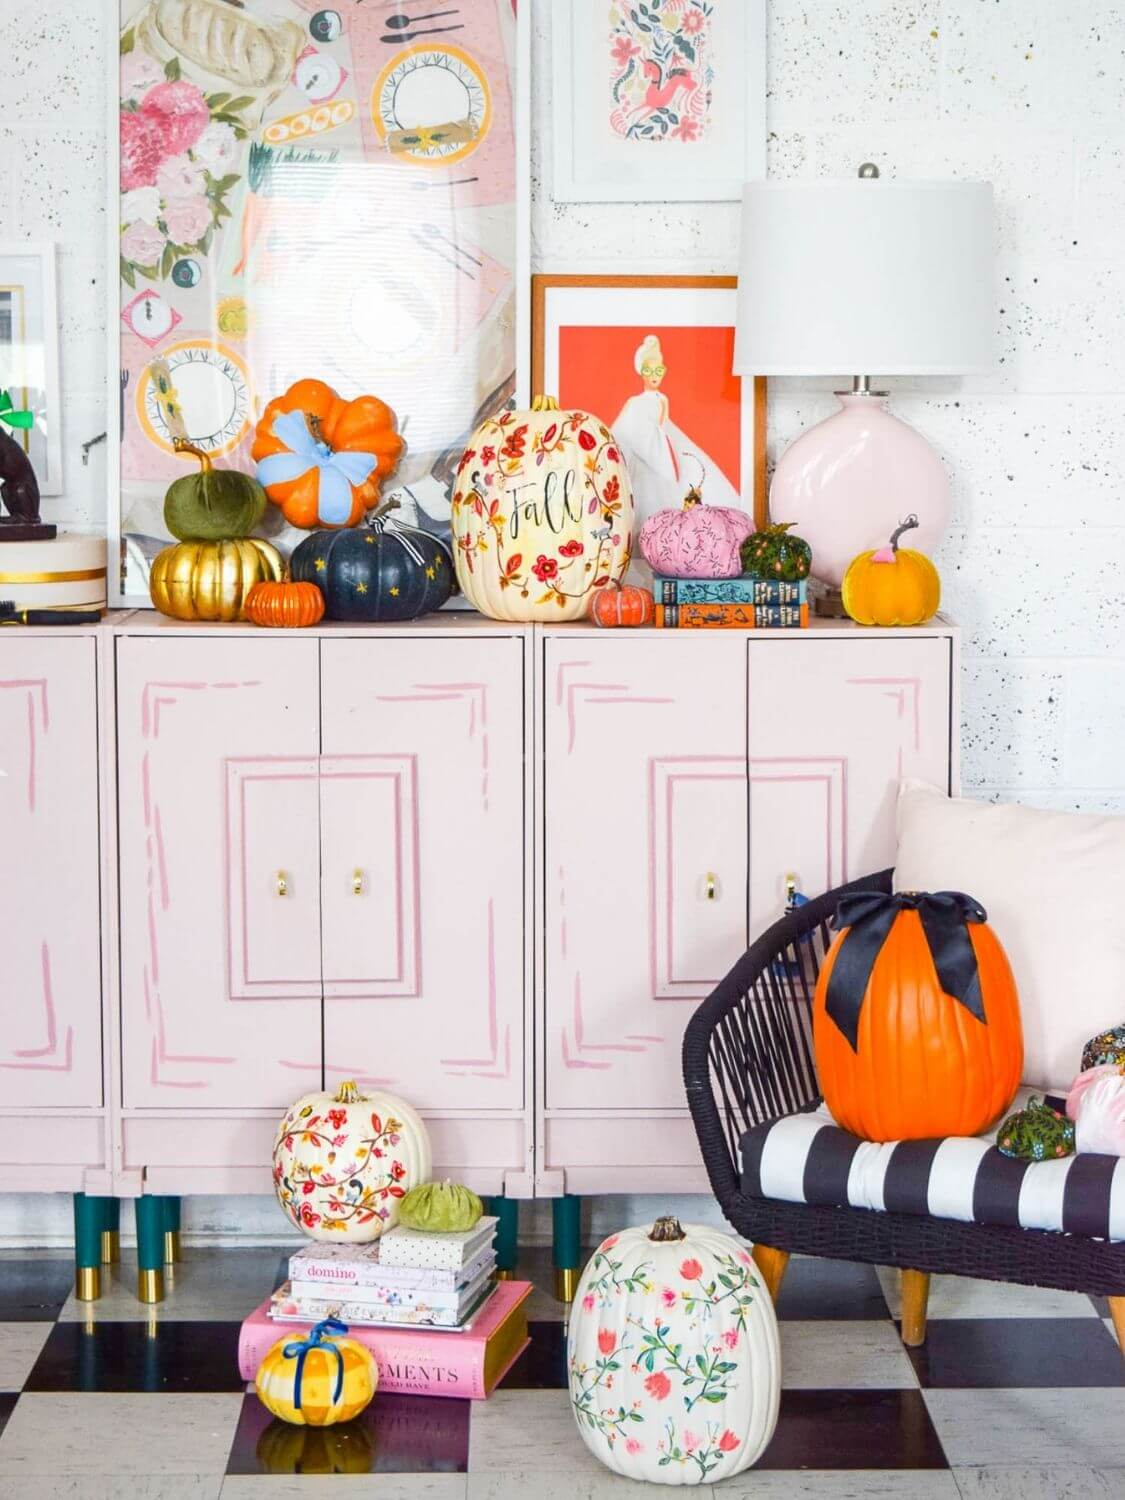 Looking for some no-carve pumpkin decorating ideas? Here are 20+ of the prettiest no-carve pumpkins you ever did see! #nocarvepumpkins #nocarvepumpkinideas #nocarvepumpkindecorating #halloweeninspiration